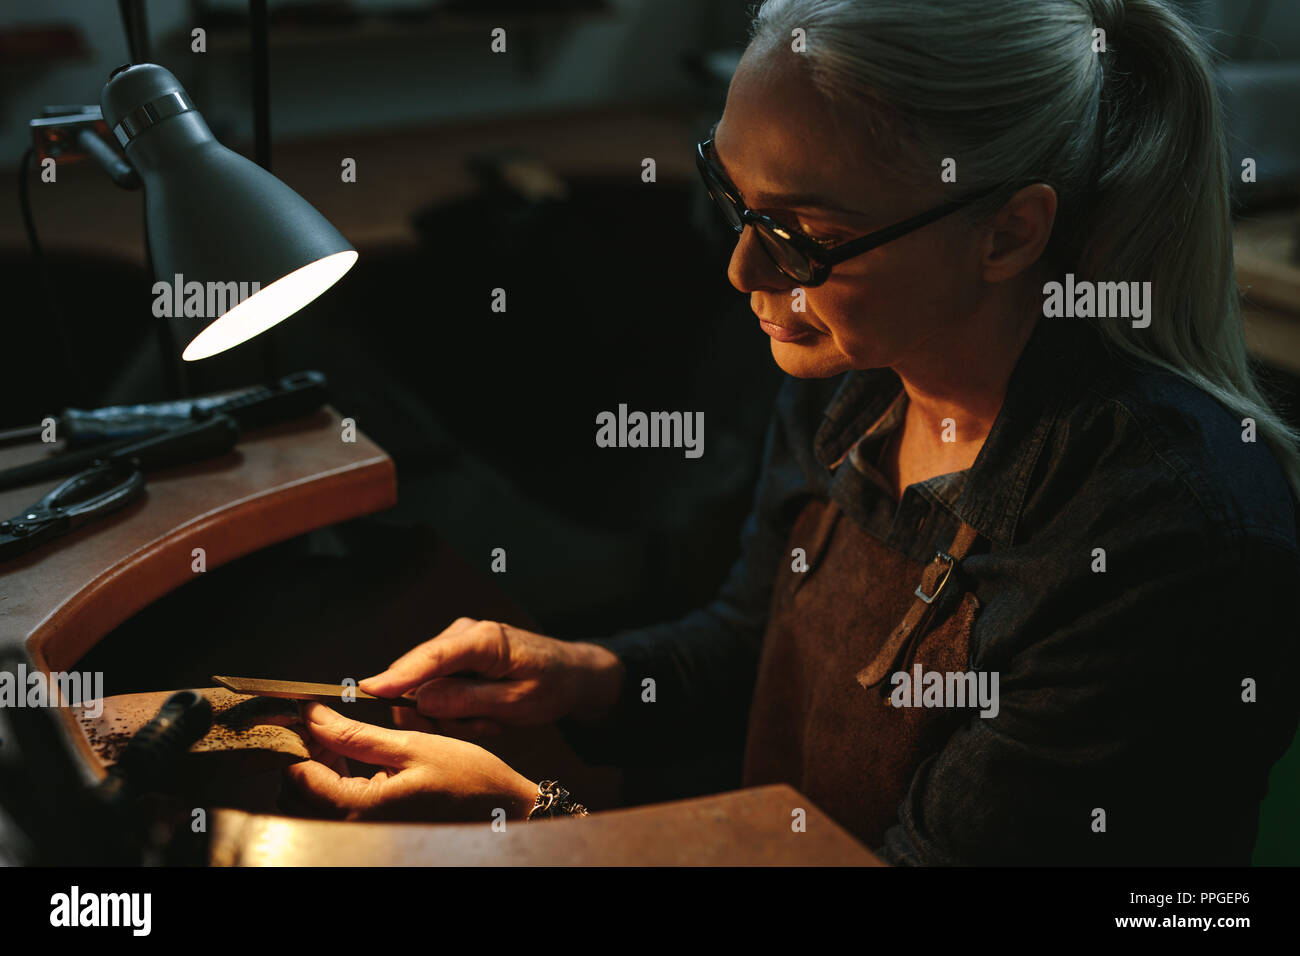 Goldsmith working and shaping an unfinished jewelry piece with a tool at a workbench in workshop. Mature female goldsmith working in her workshop. - Stock Image